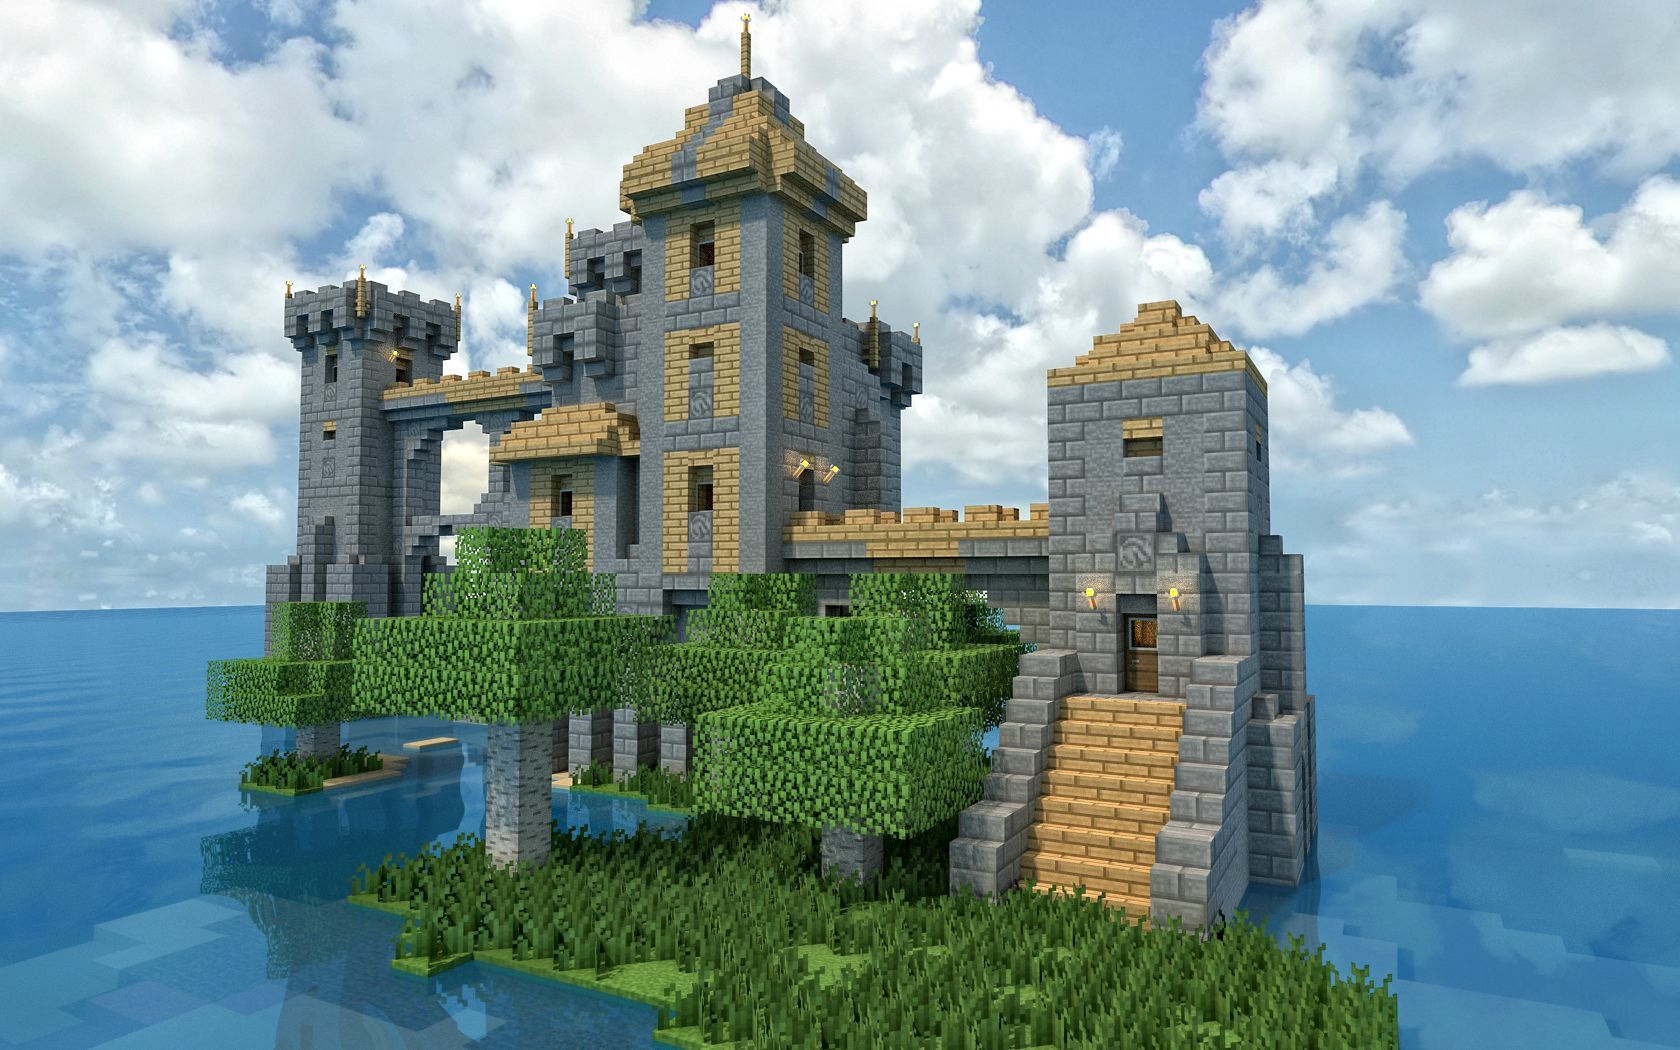 Pin By Trapiki On Minecraft Inspiration